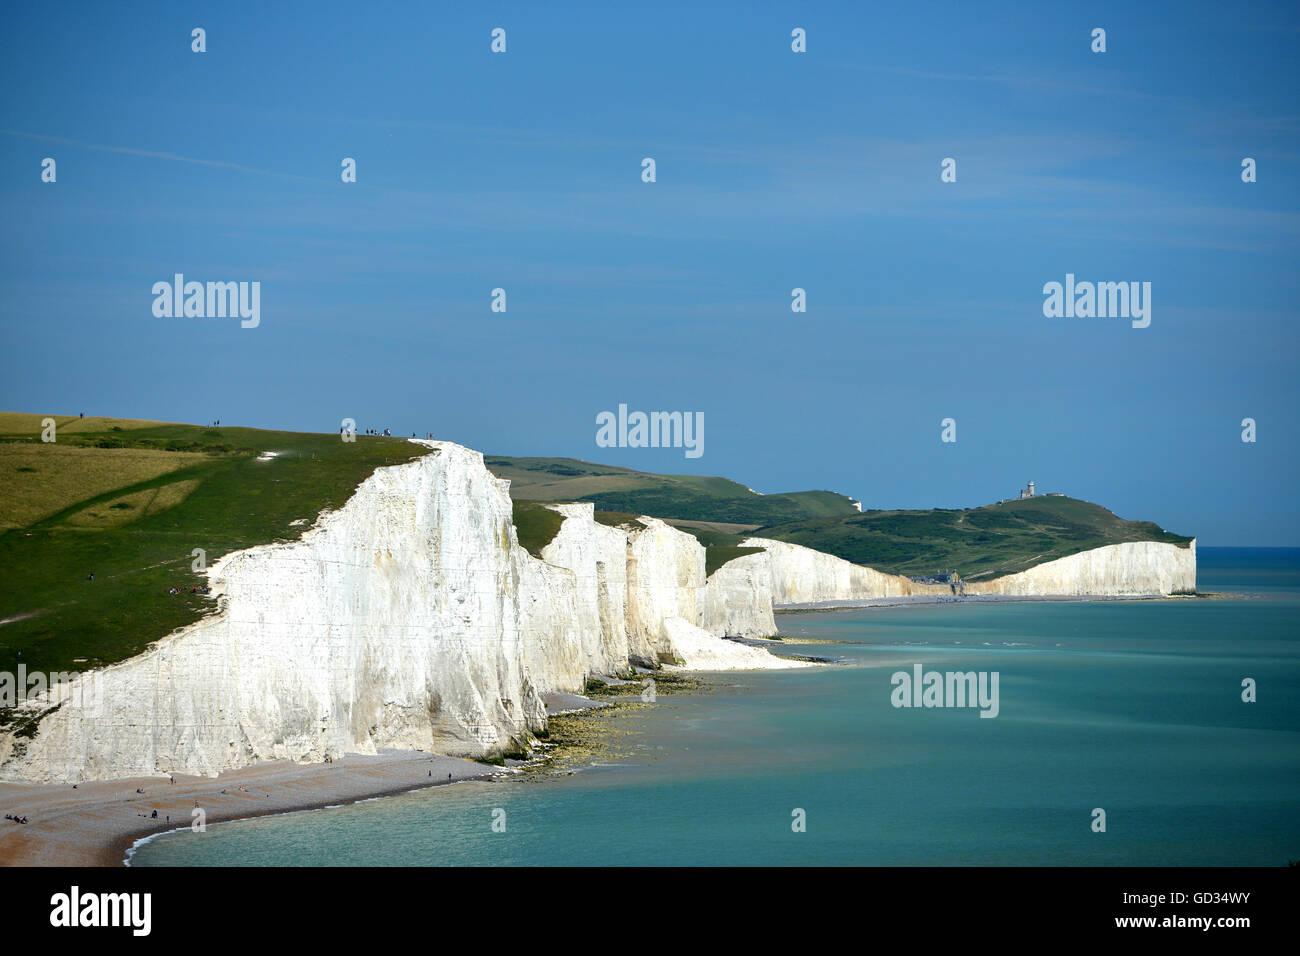 L'iconico vista della costa inglese, Sette sorelle chalk cliffs, East Sussex Immagini Stock